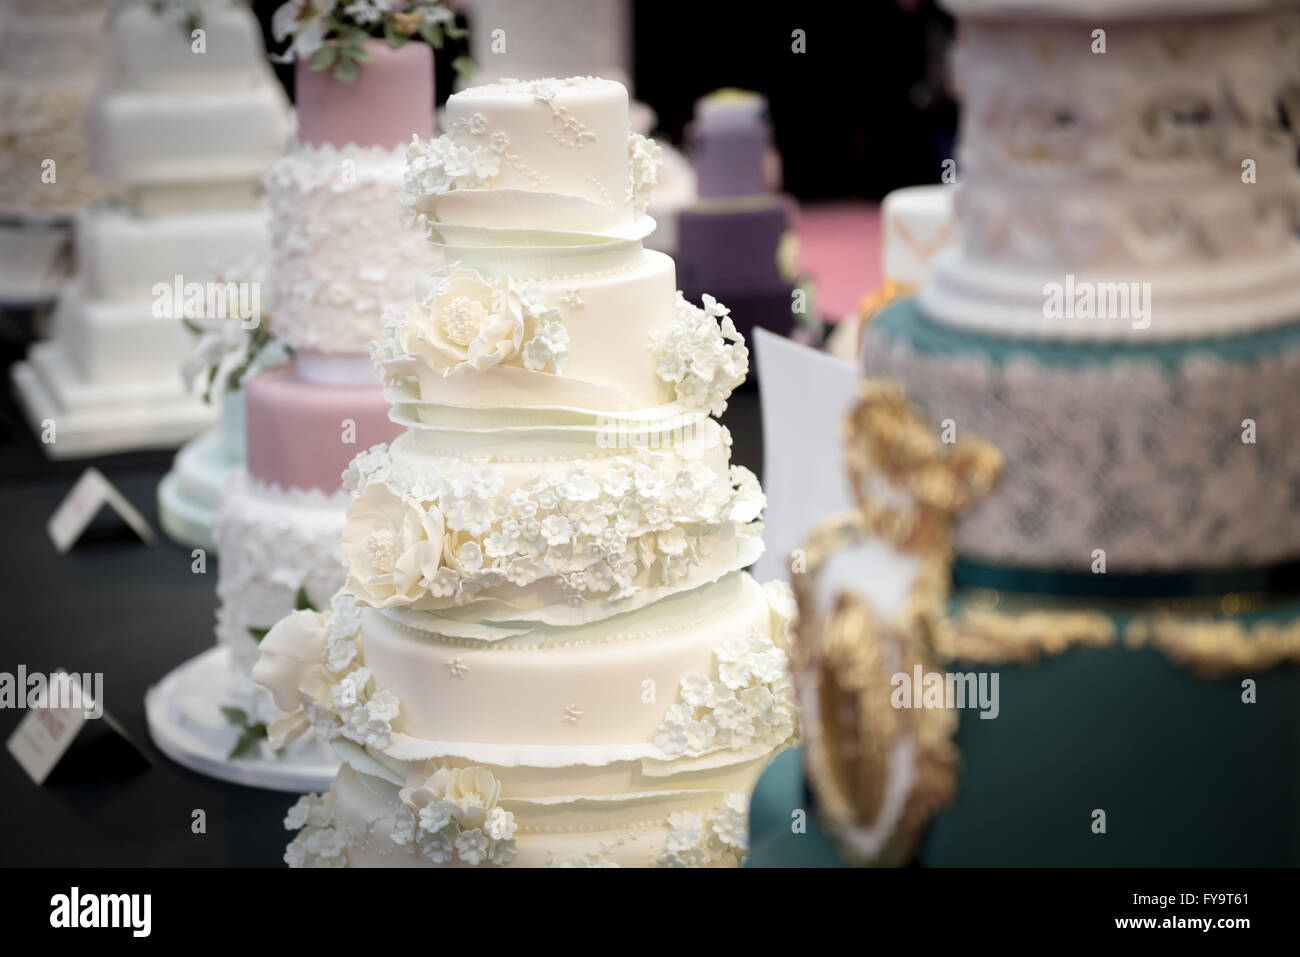 Decorative wedding cakes with edible flowers at Cake International ...